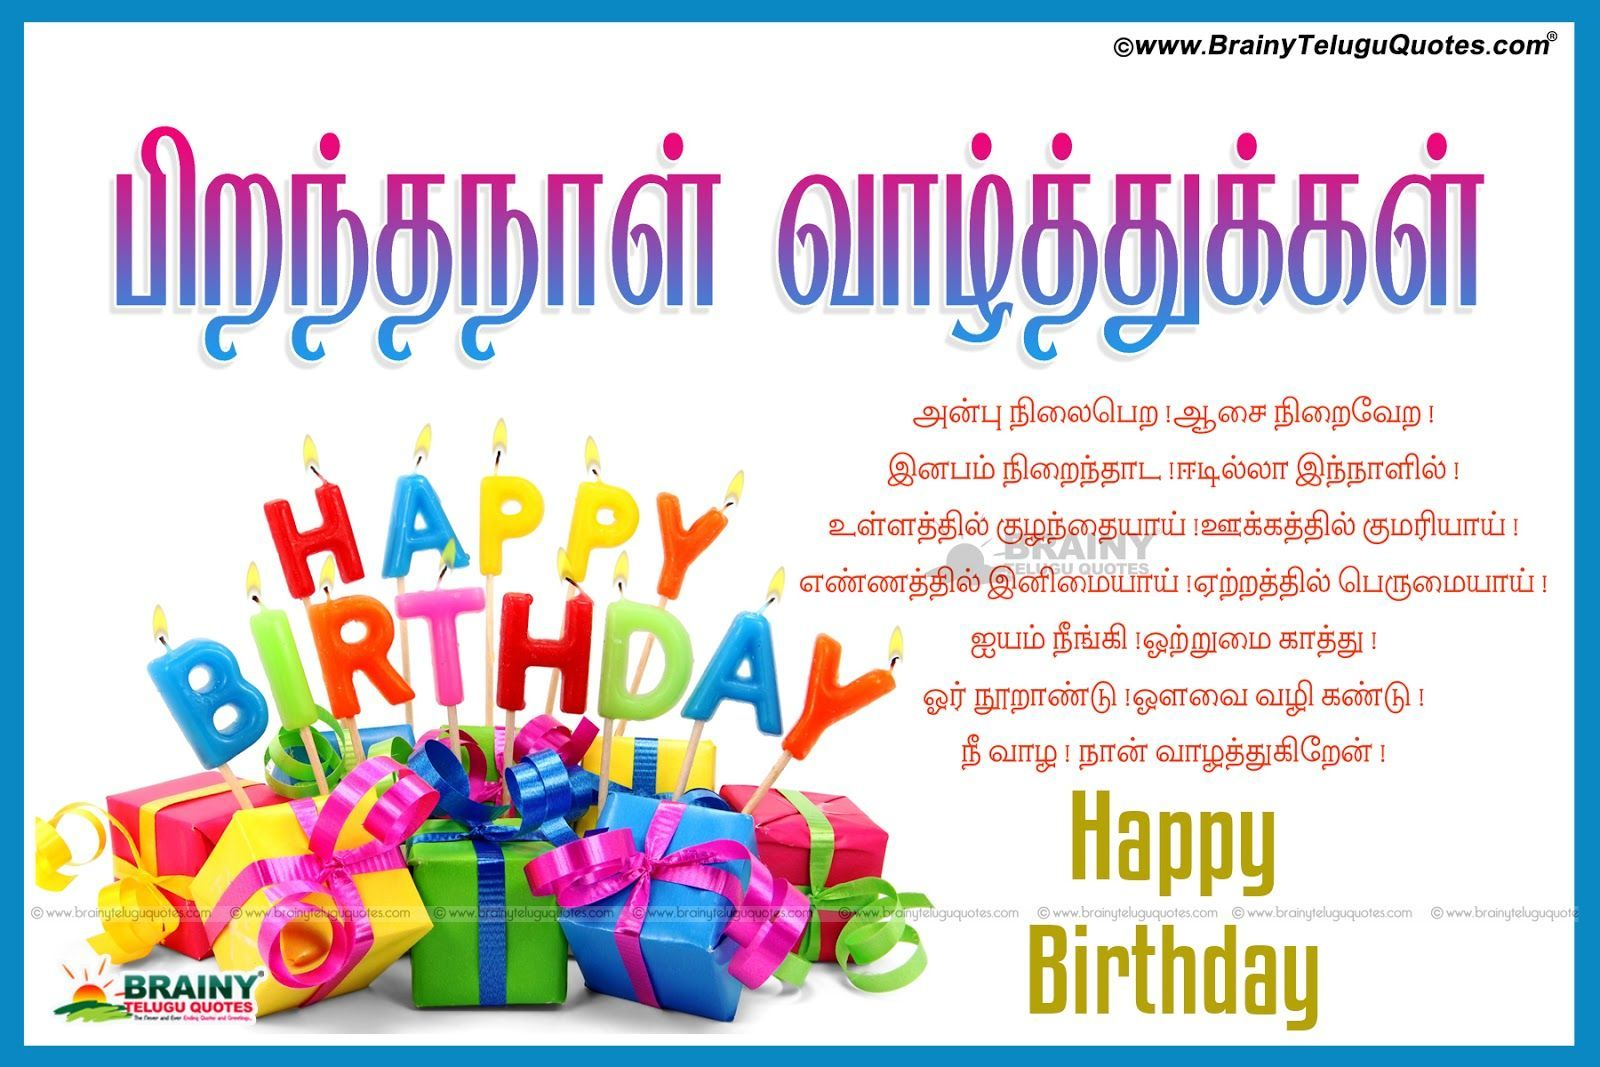 2018 happy birthday images in tamil quotes on 2018 happy